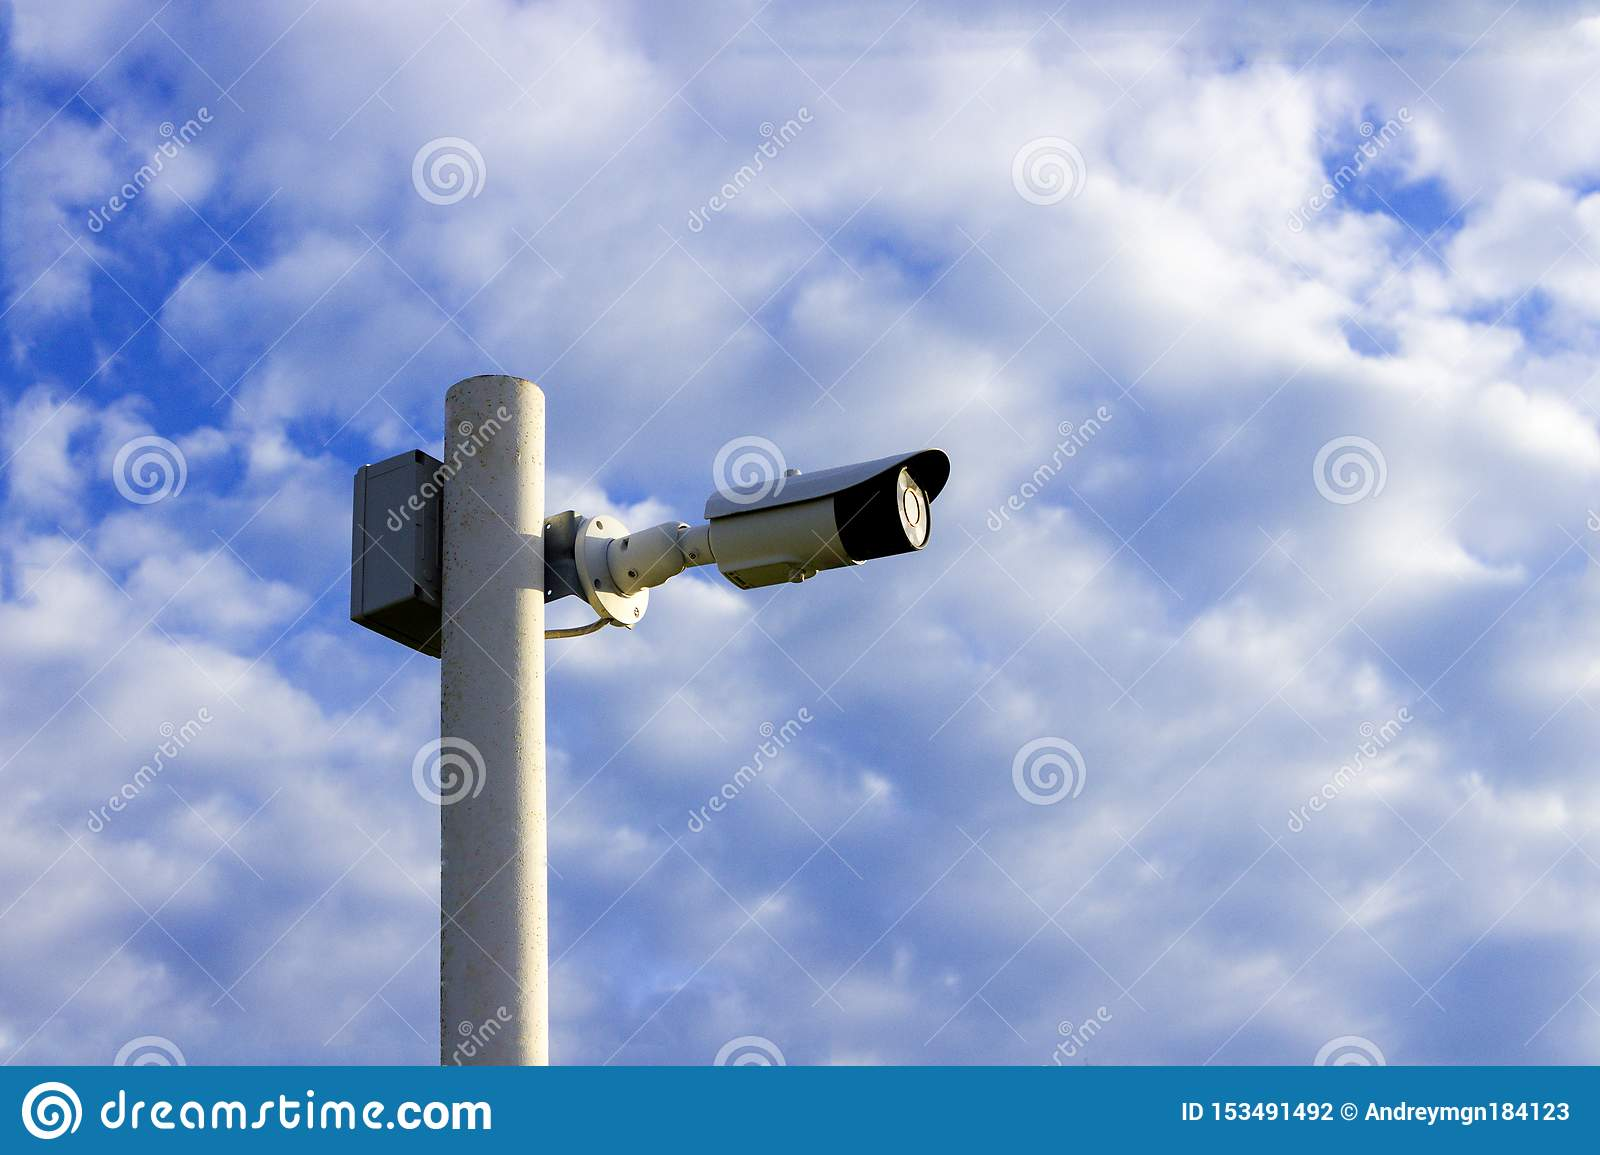 Security camera on the pole